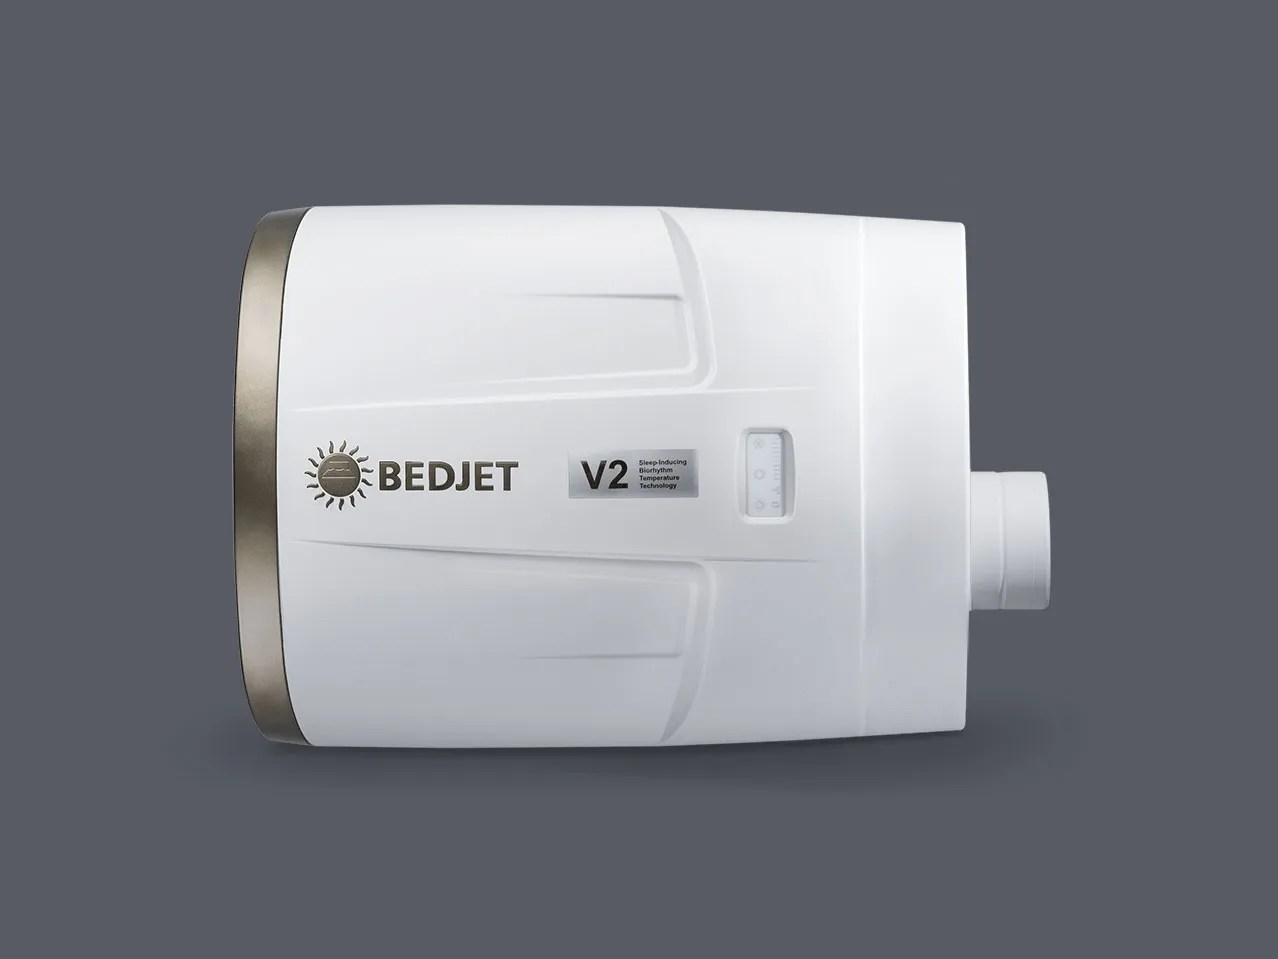 Bed Heater Bedjet V2 Review Comfortable And Effective Climate Control For Beds